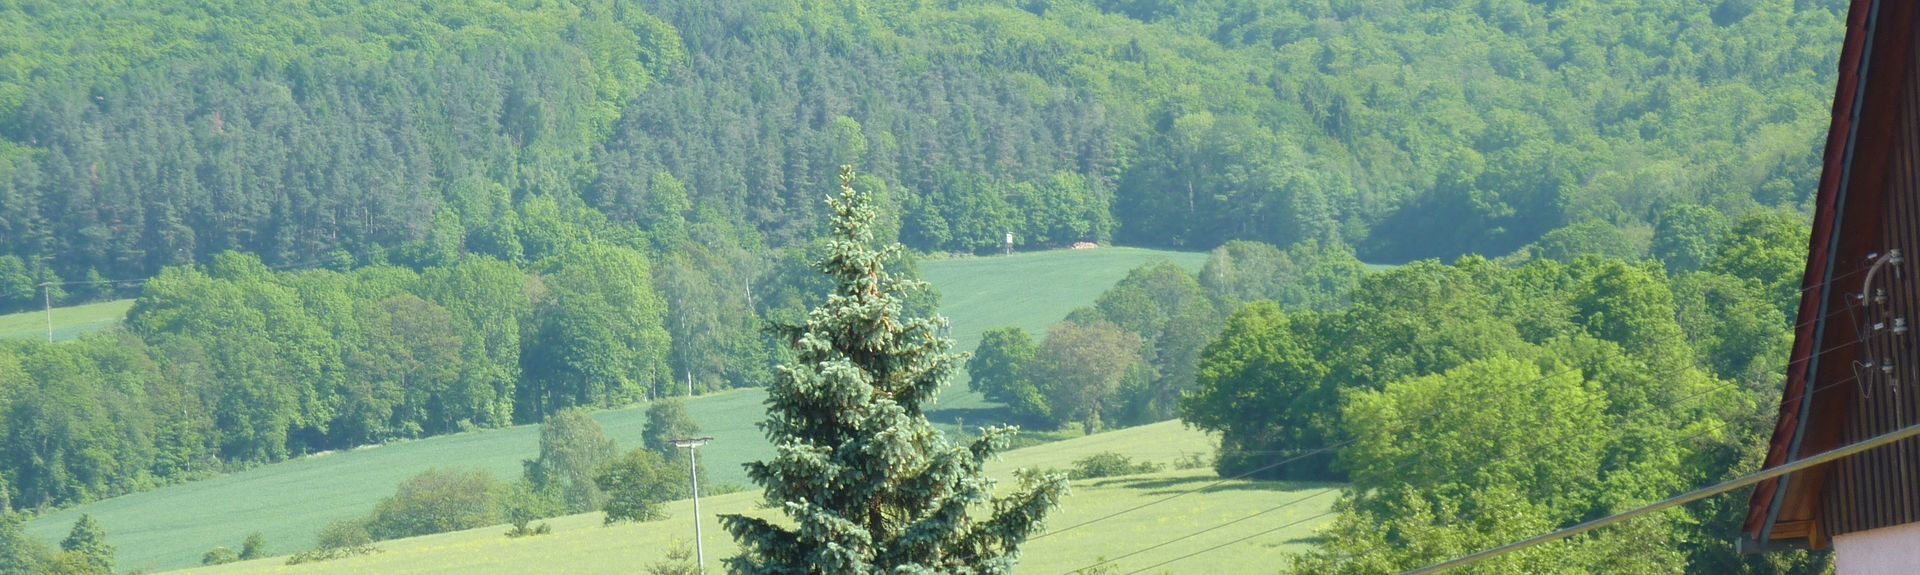 Ershausen, Germany